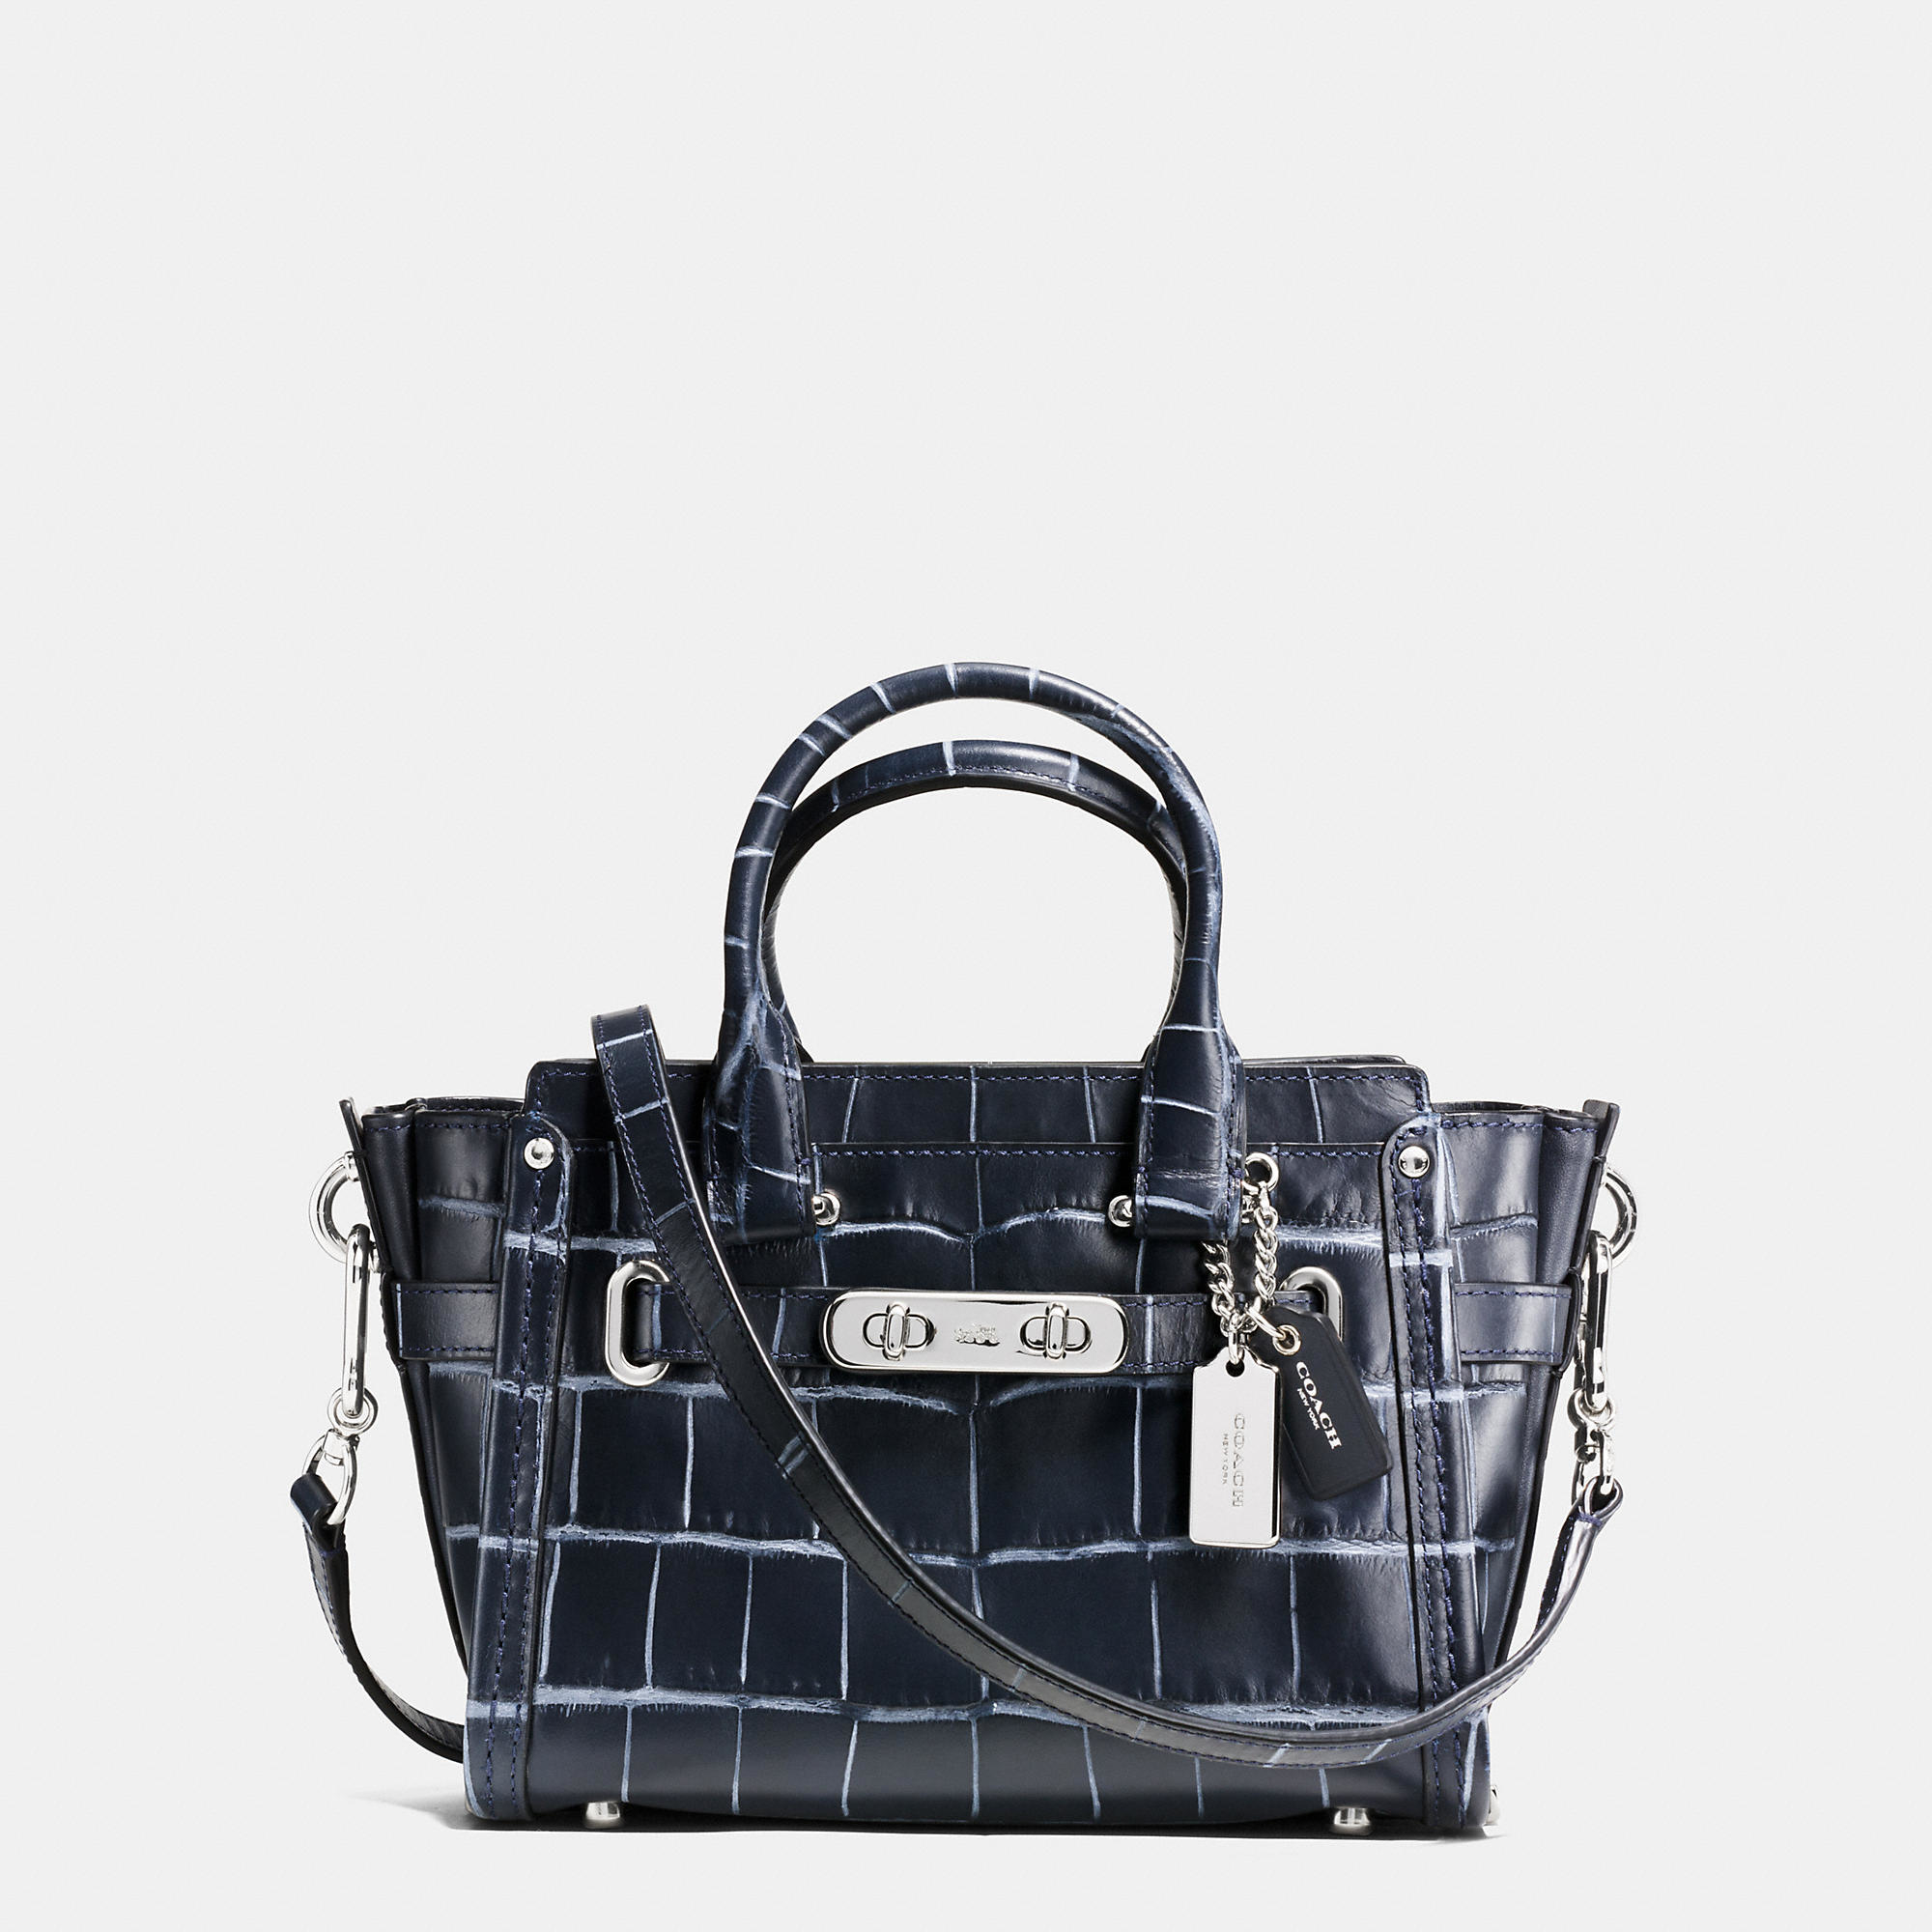 Coach Swagger 20 In Croc Embossed Denim Leather In Silver